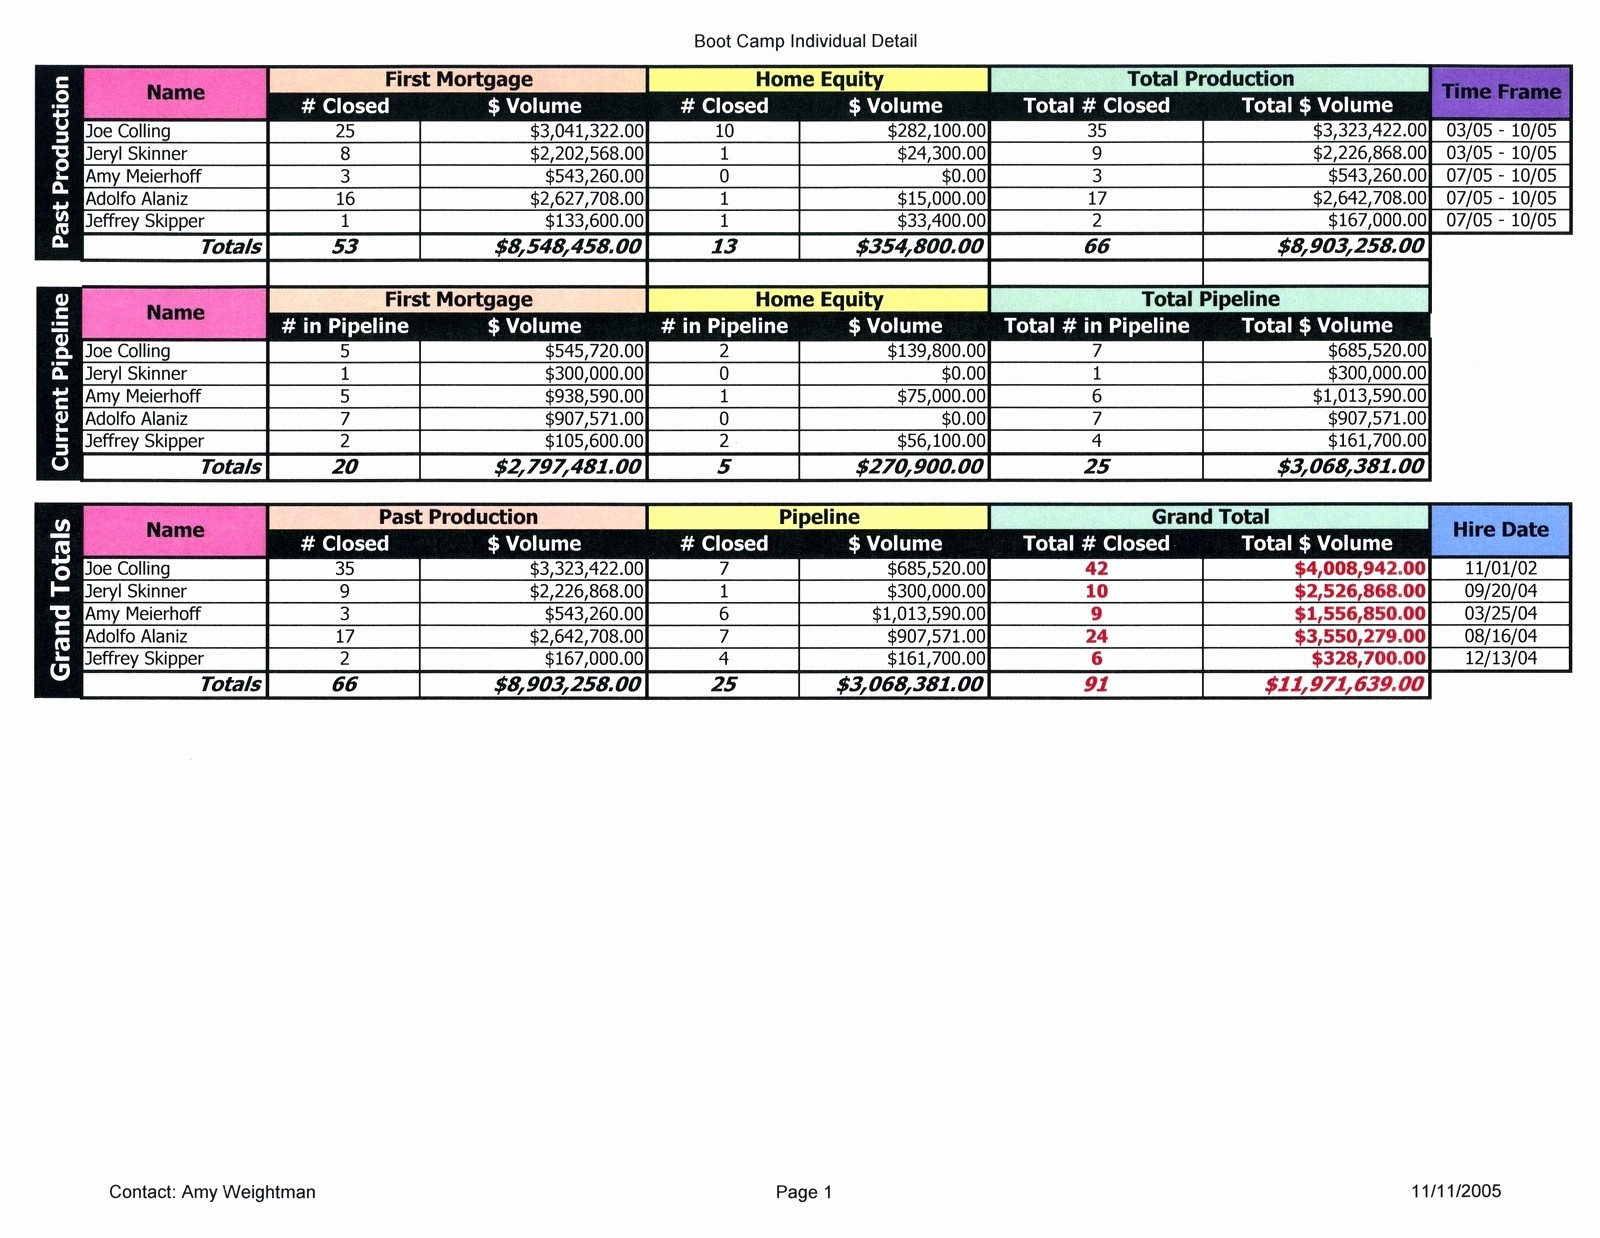 Employee Attendance Tracker Excel Template Training Tracker Excel To Excel Spreadsheet Templates For Tracking Training